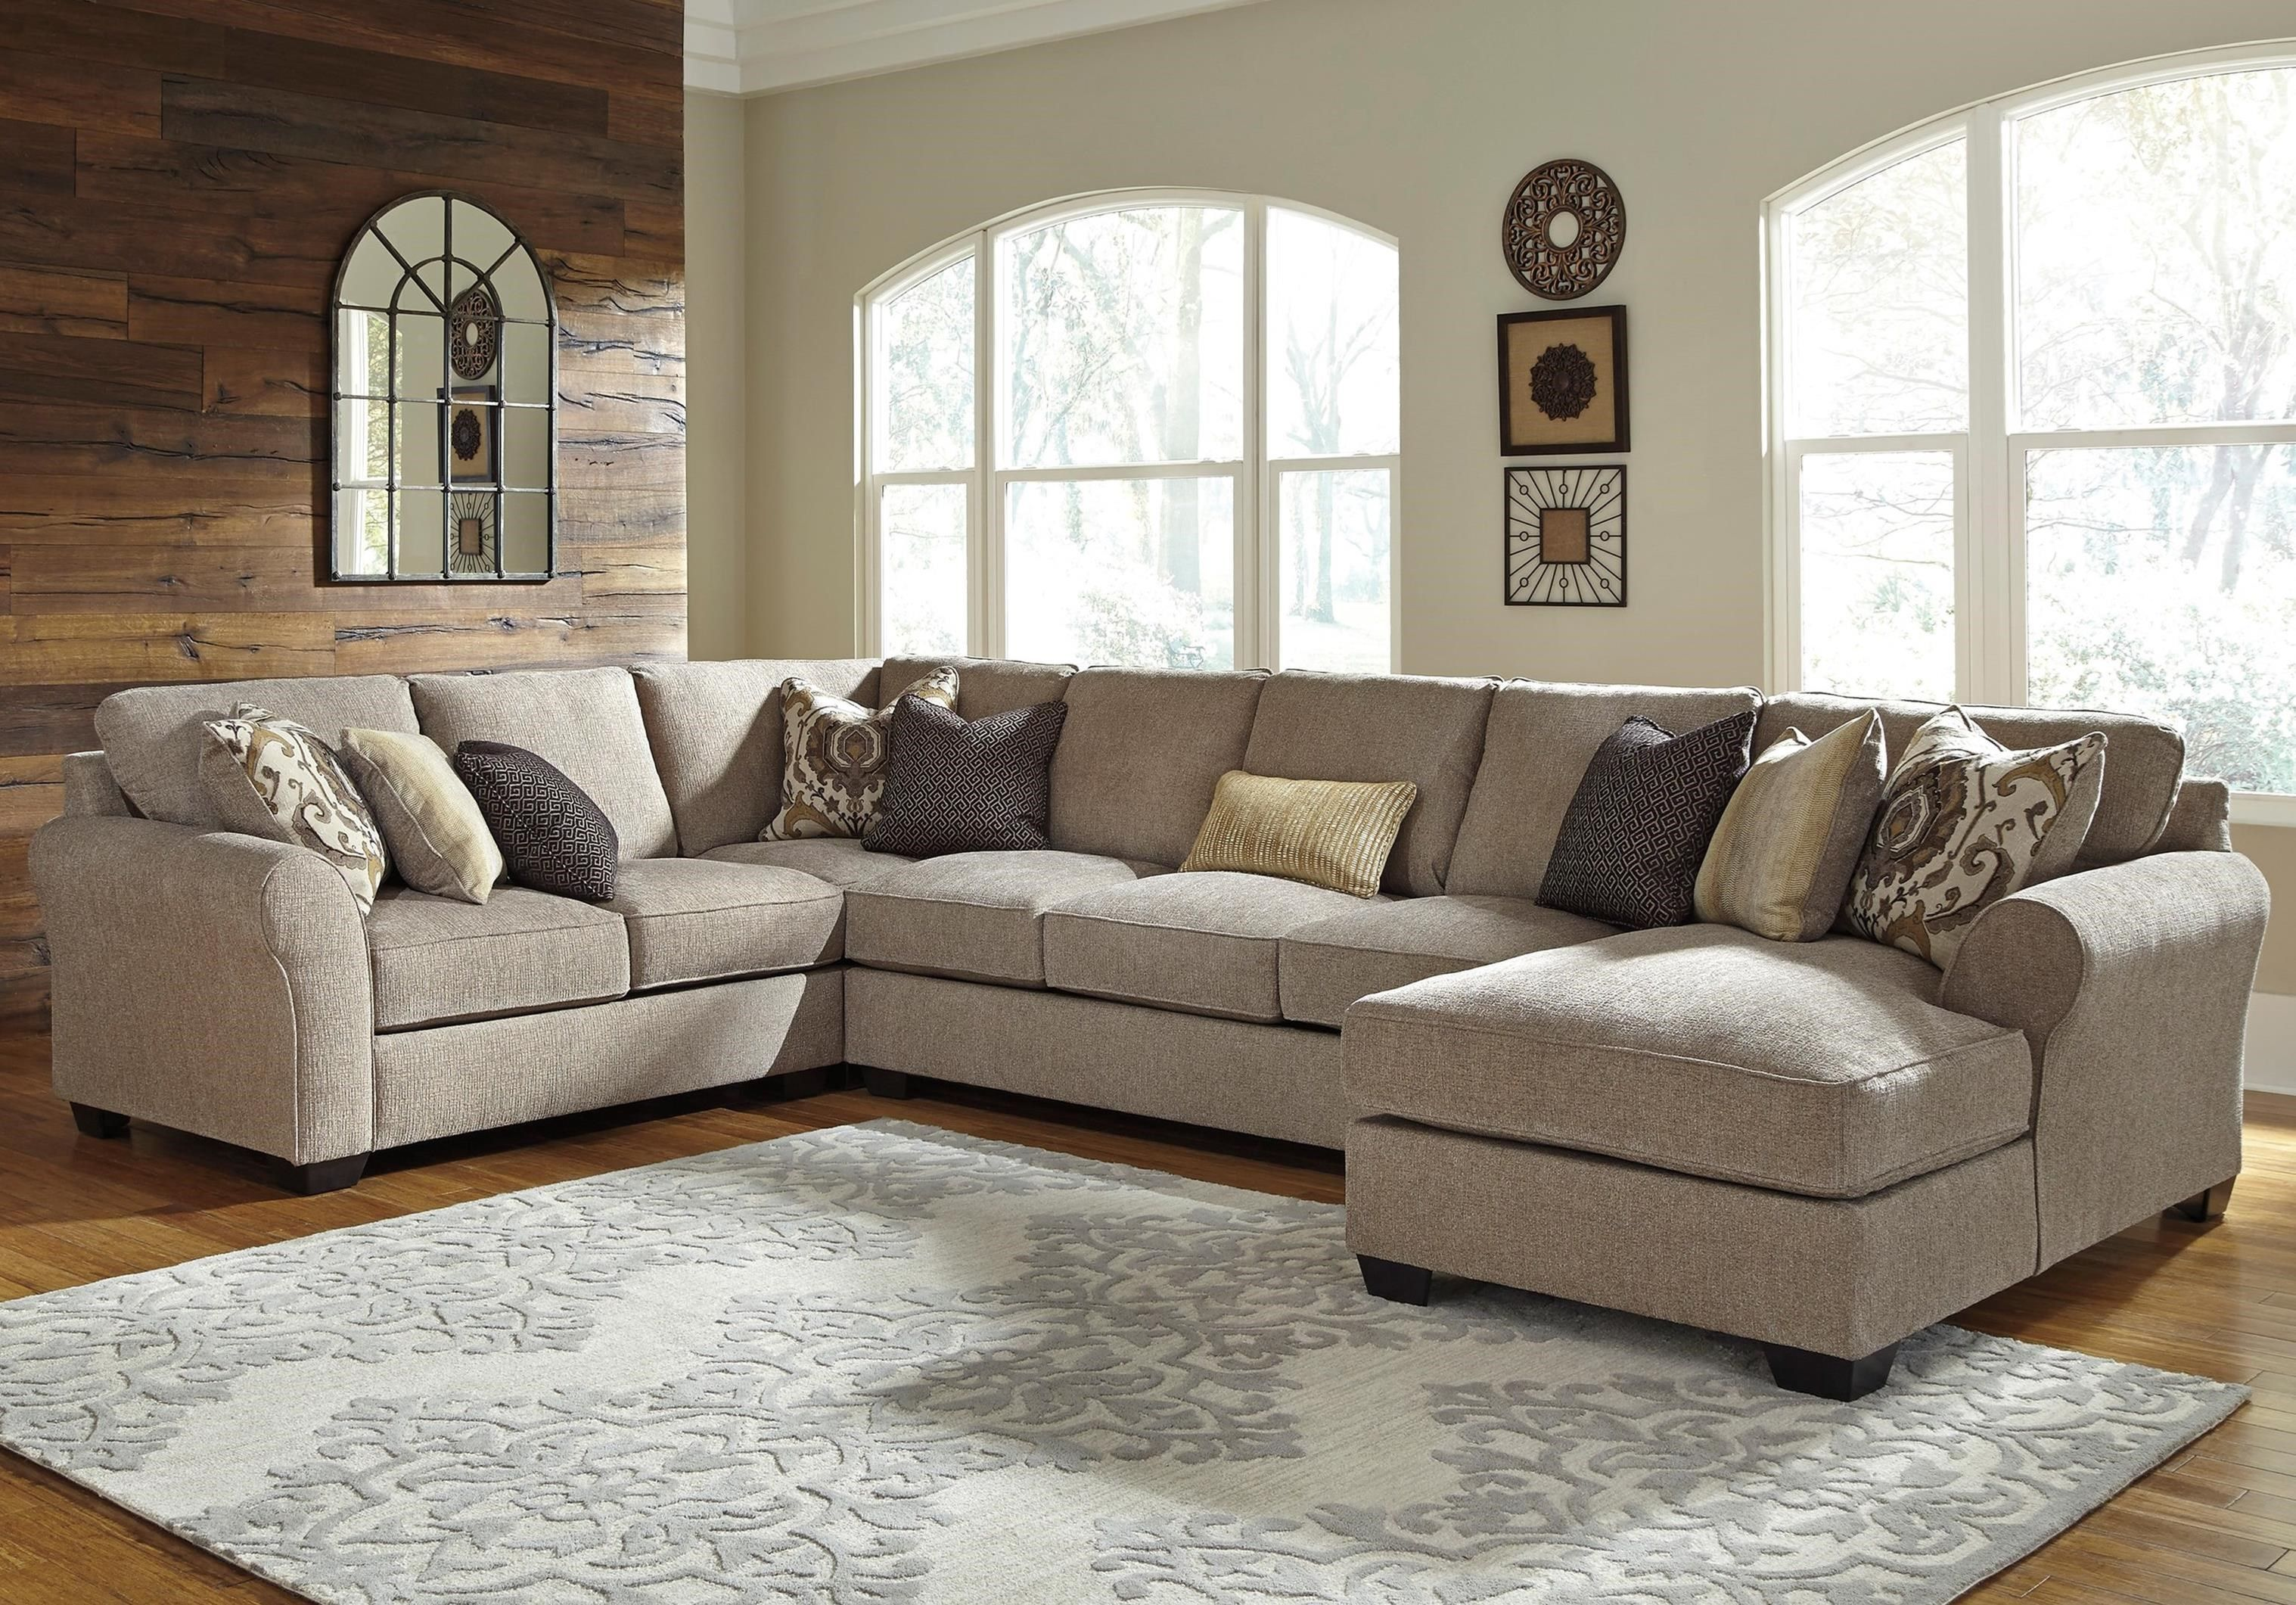 Best Pantomine 4 Piece Sectional With Right Chaise Armless 400 x 300